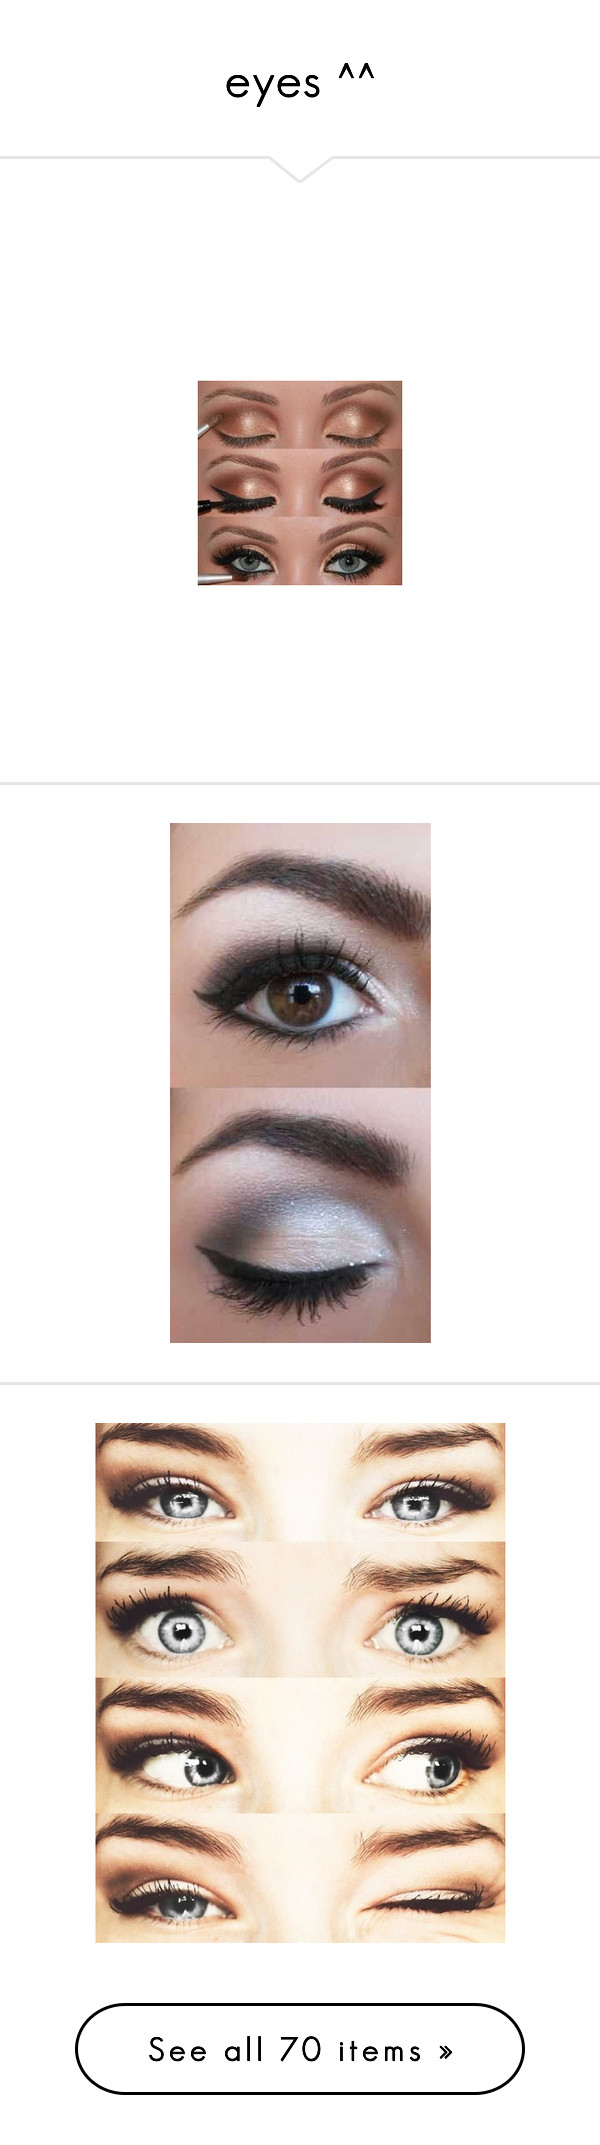 """""""eyes ^^"""" by stypayhorlikson1d ❤ liked on Polyvore"""